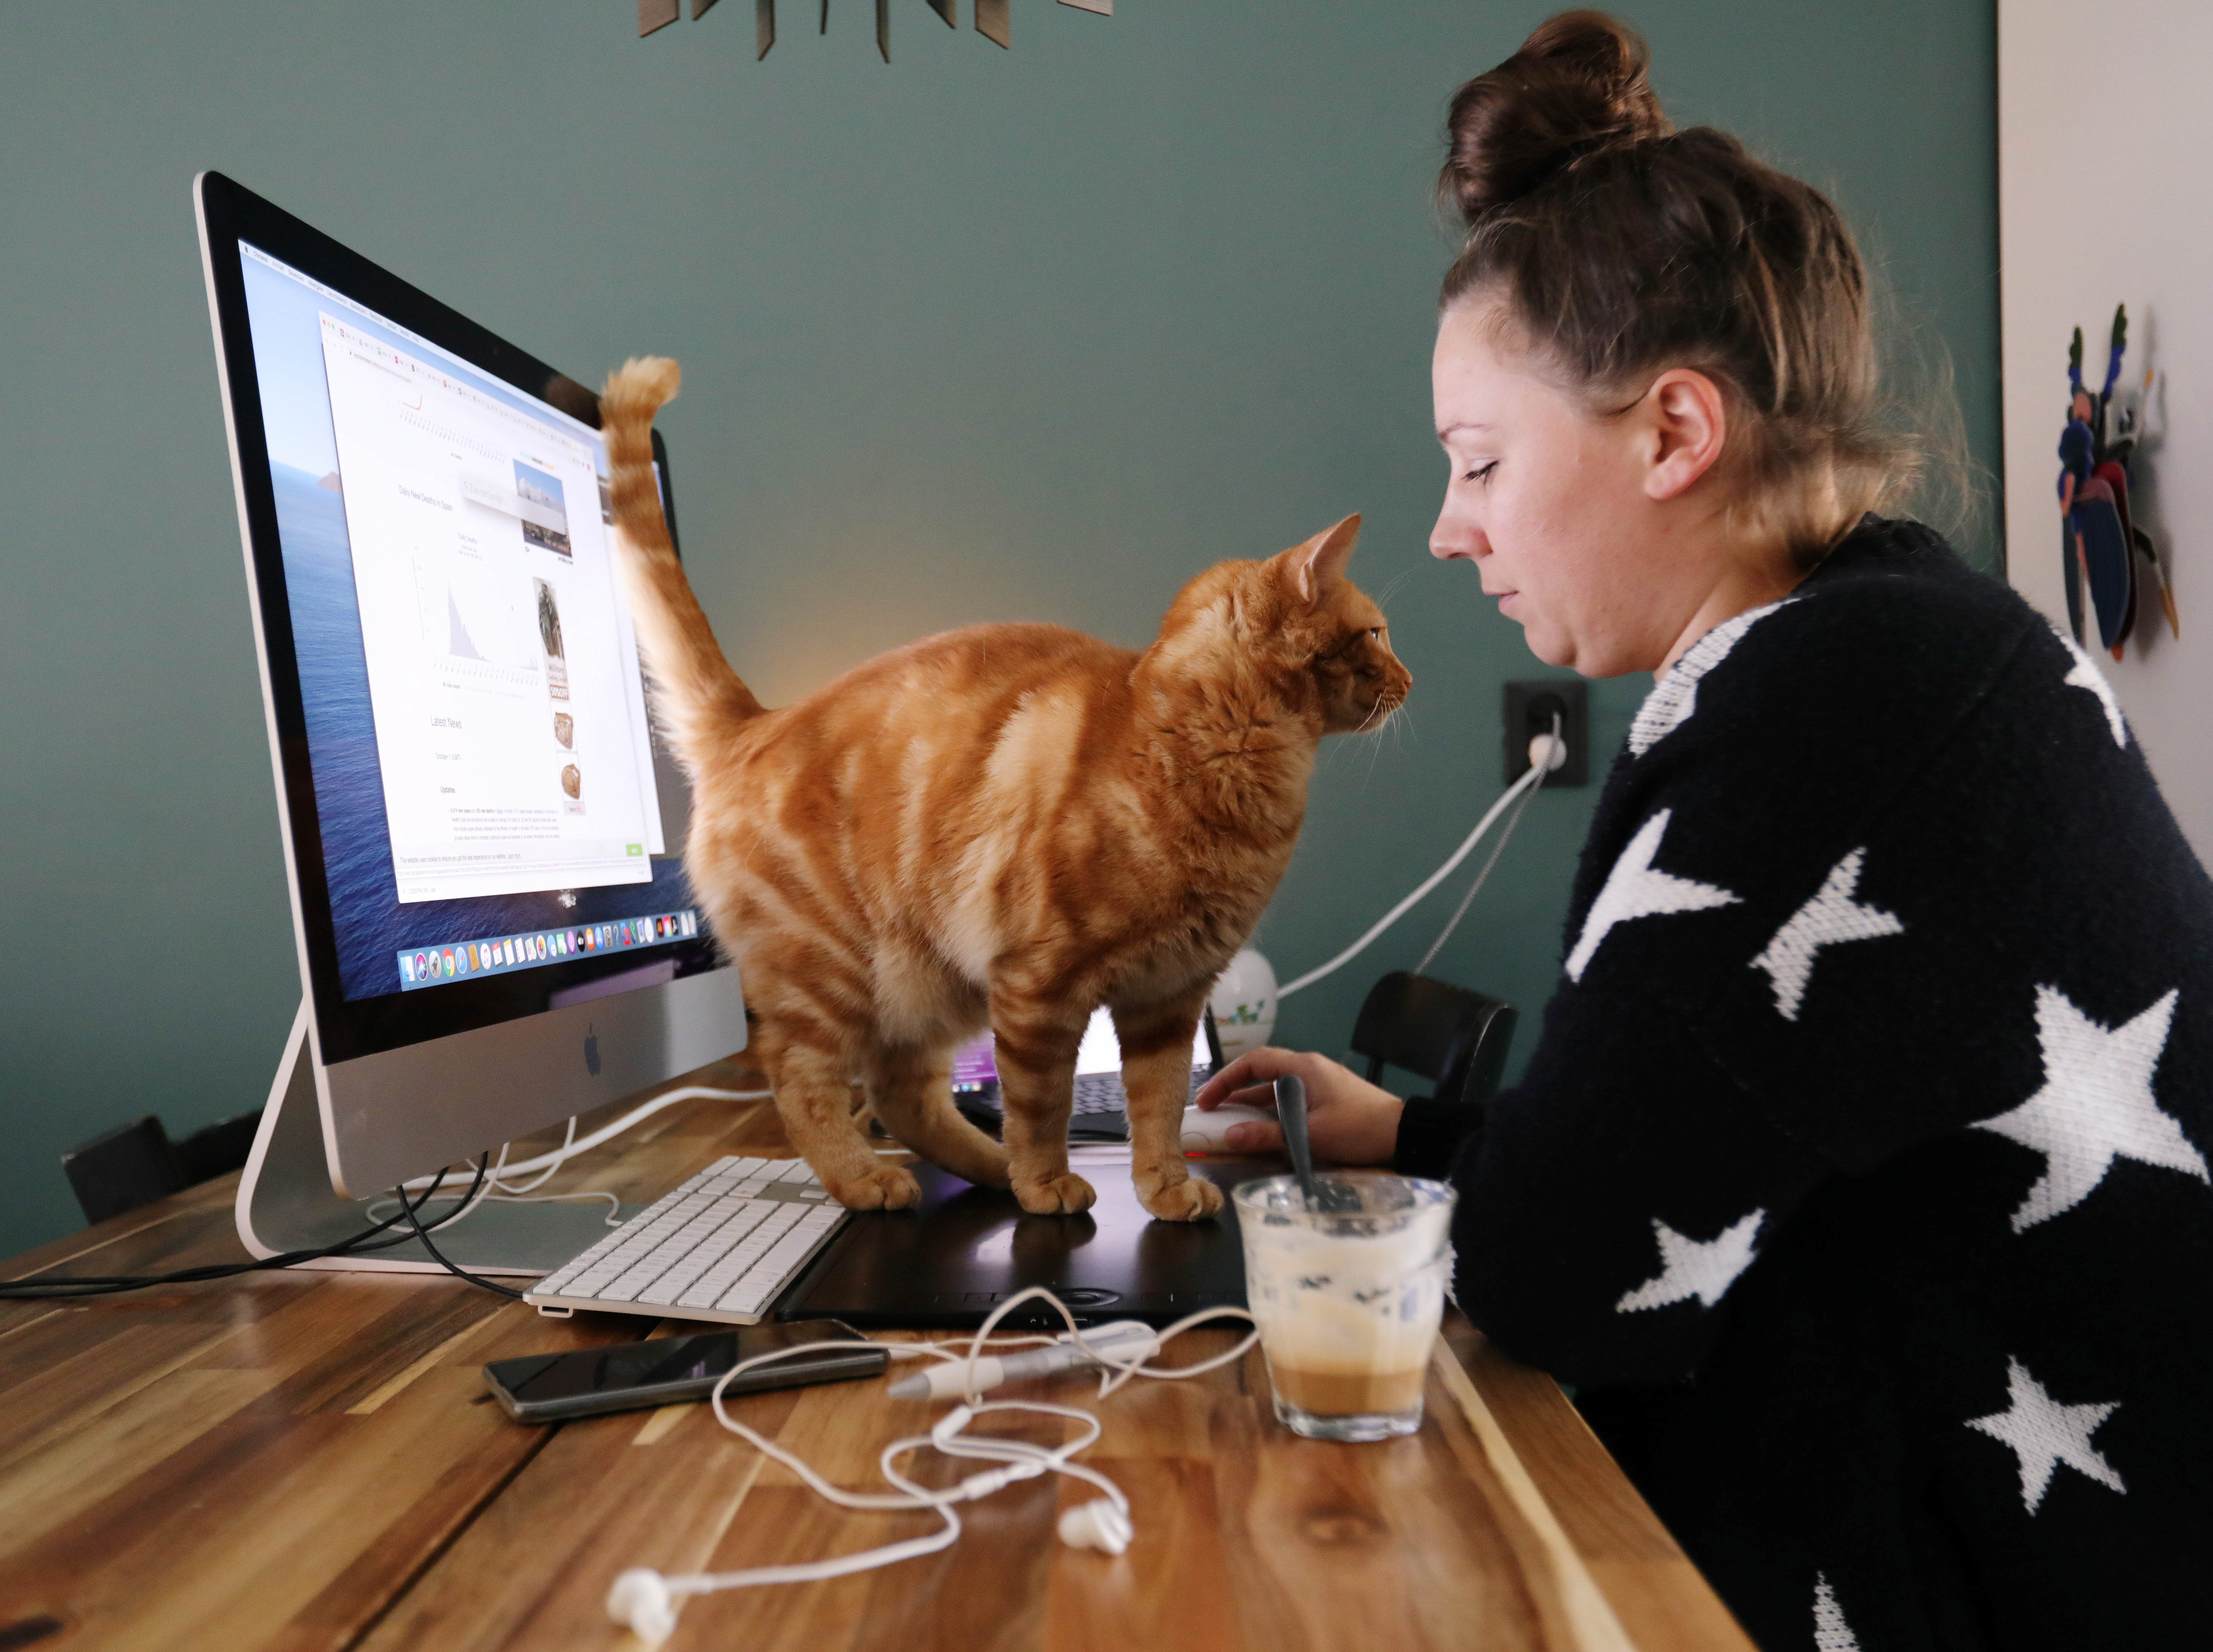 A woman works in a house with her cat while workers are forced to work from home and demand payback for extra home office costs during the coronavirus disease (COVID-19) outbreak in Sassenheim, Netherlands October 2, 2020. Picture taken October 2, 2020. REUTERS/Eva Plevier - RC2HDJ9U715C